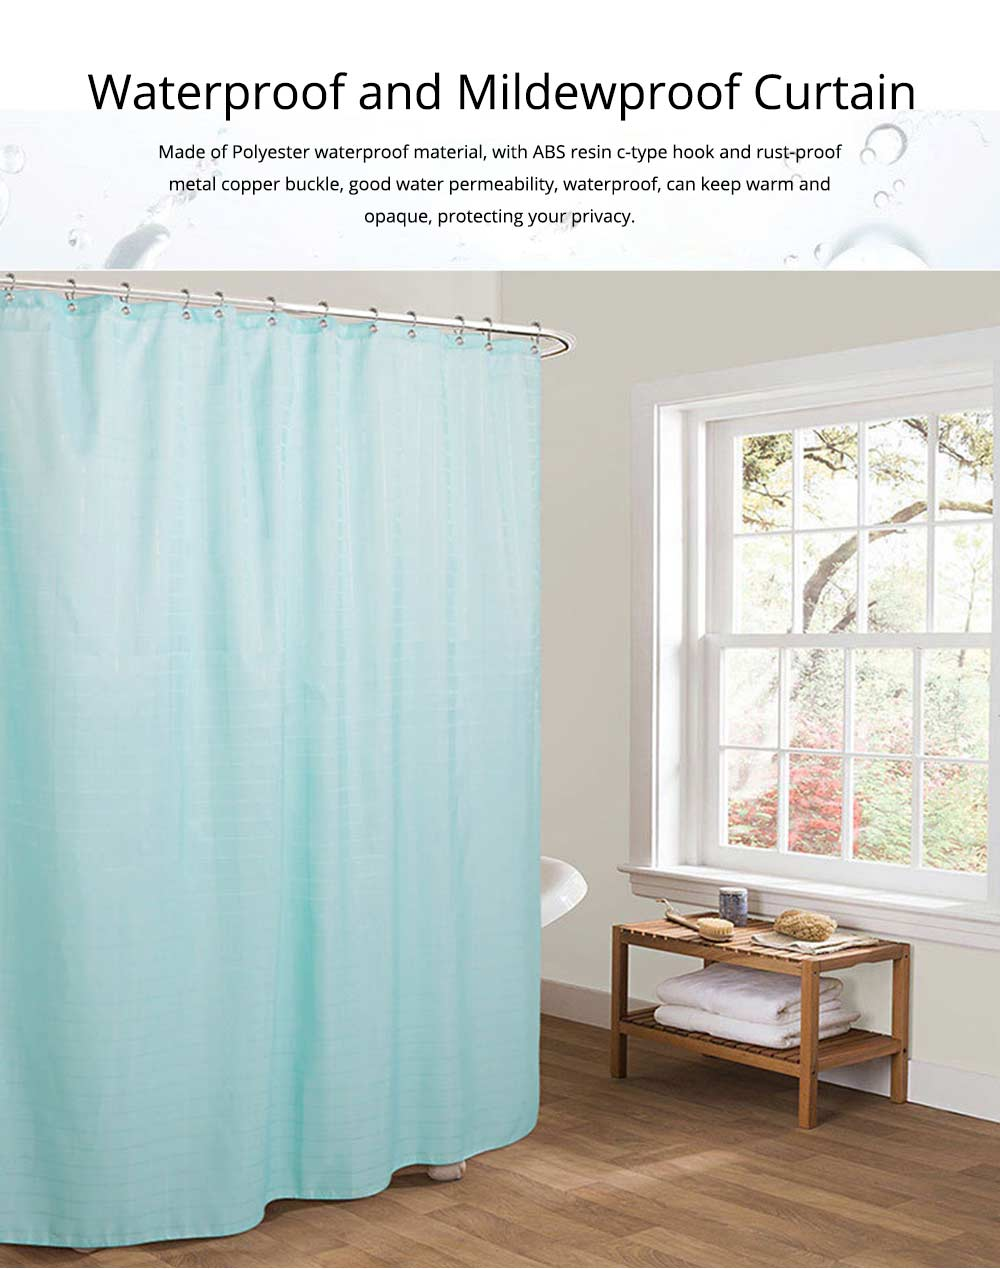 Bathroom Partition Curtains Thicken Waterproof And Mildew Proof Polyester Curtain 0